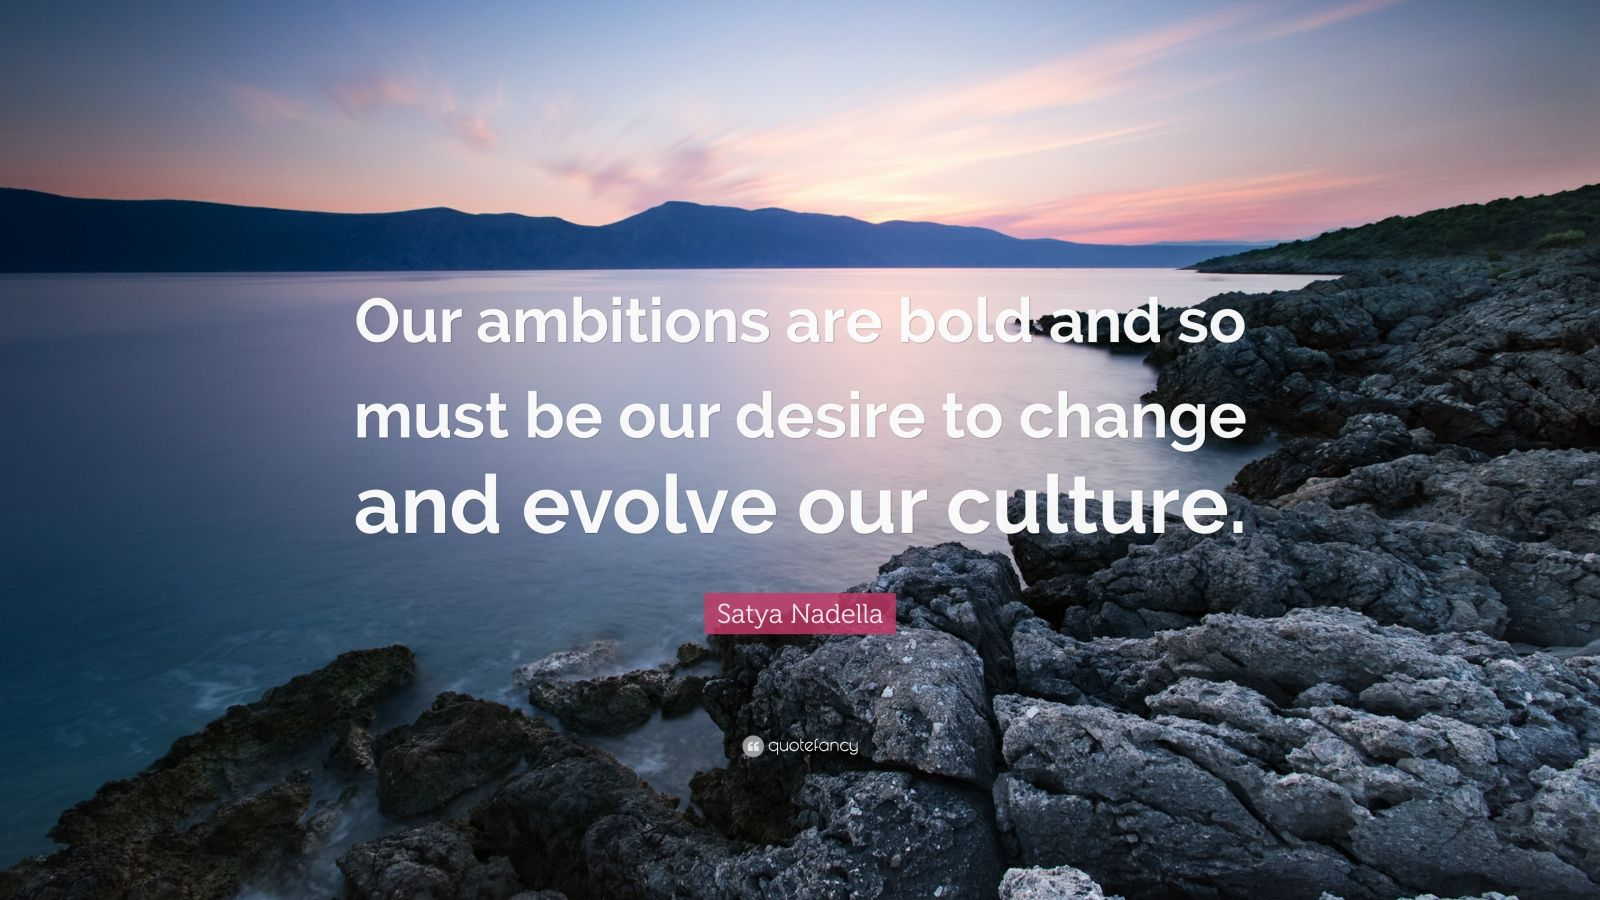 """Satya Nadella Quote: """"Our ambitions are bold and so must be our desire to change and evolve our culture."""""""